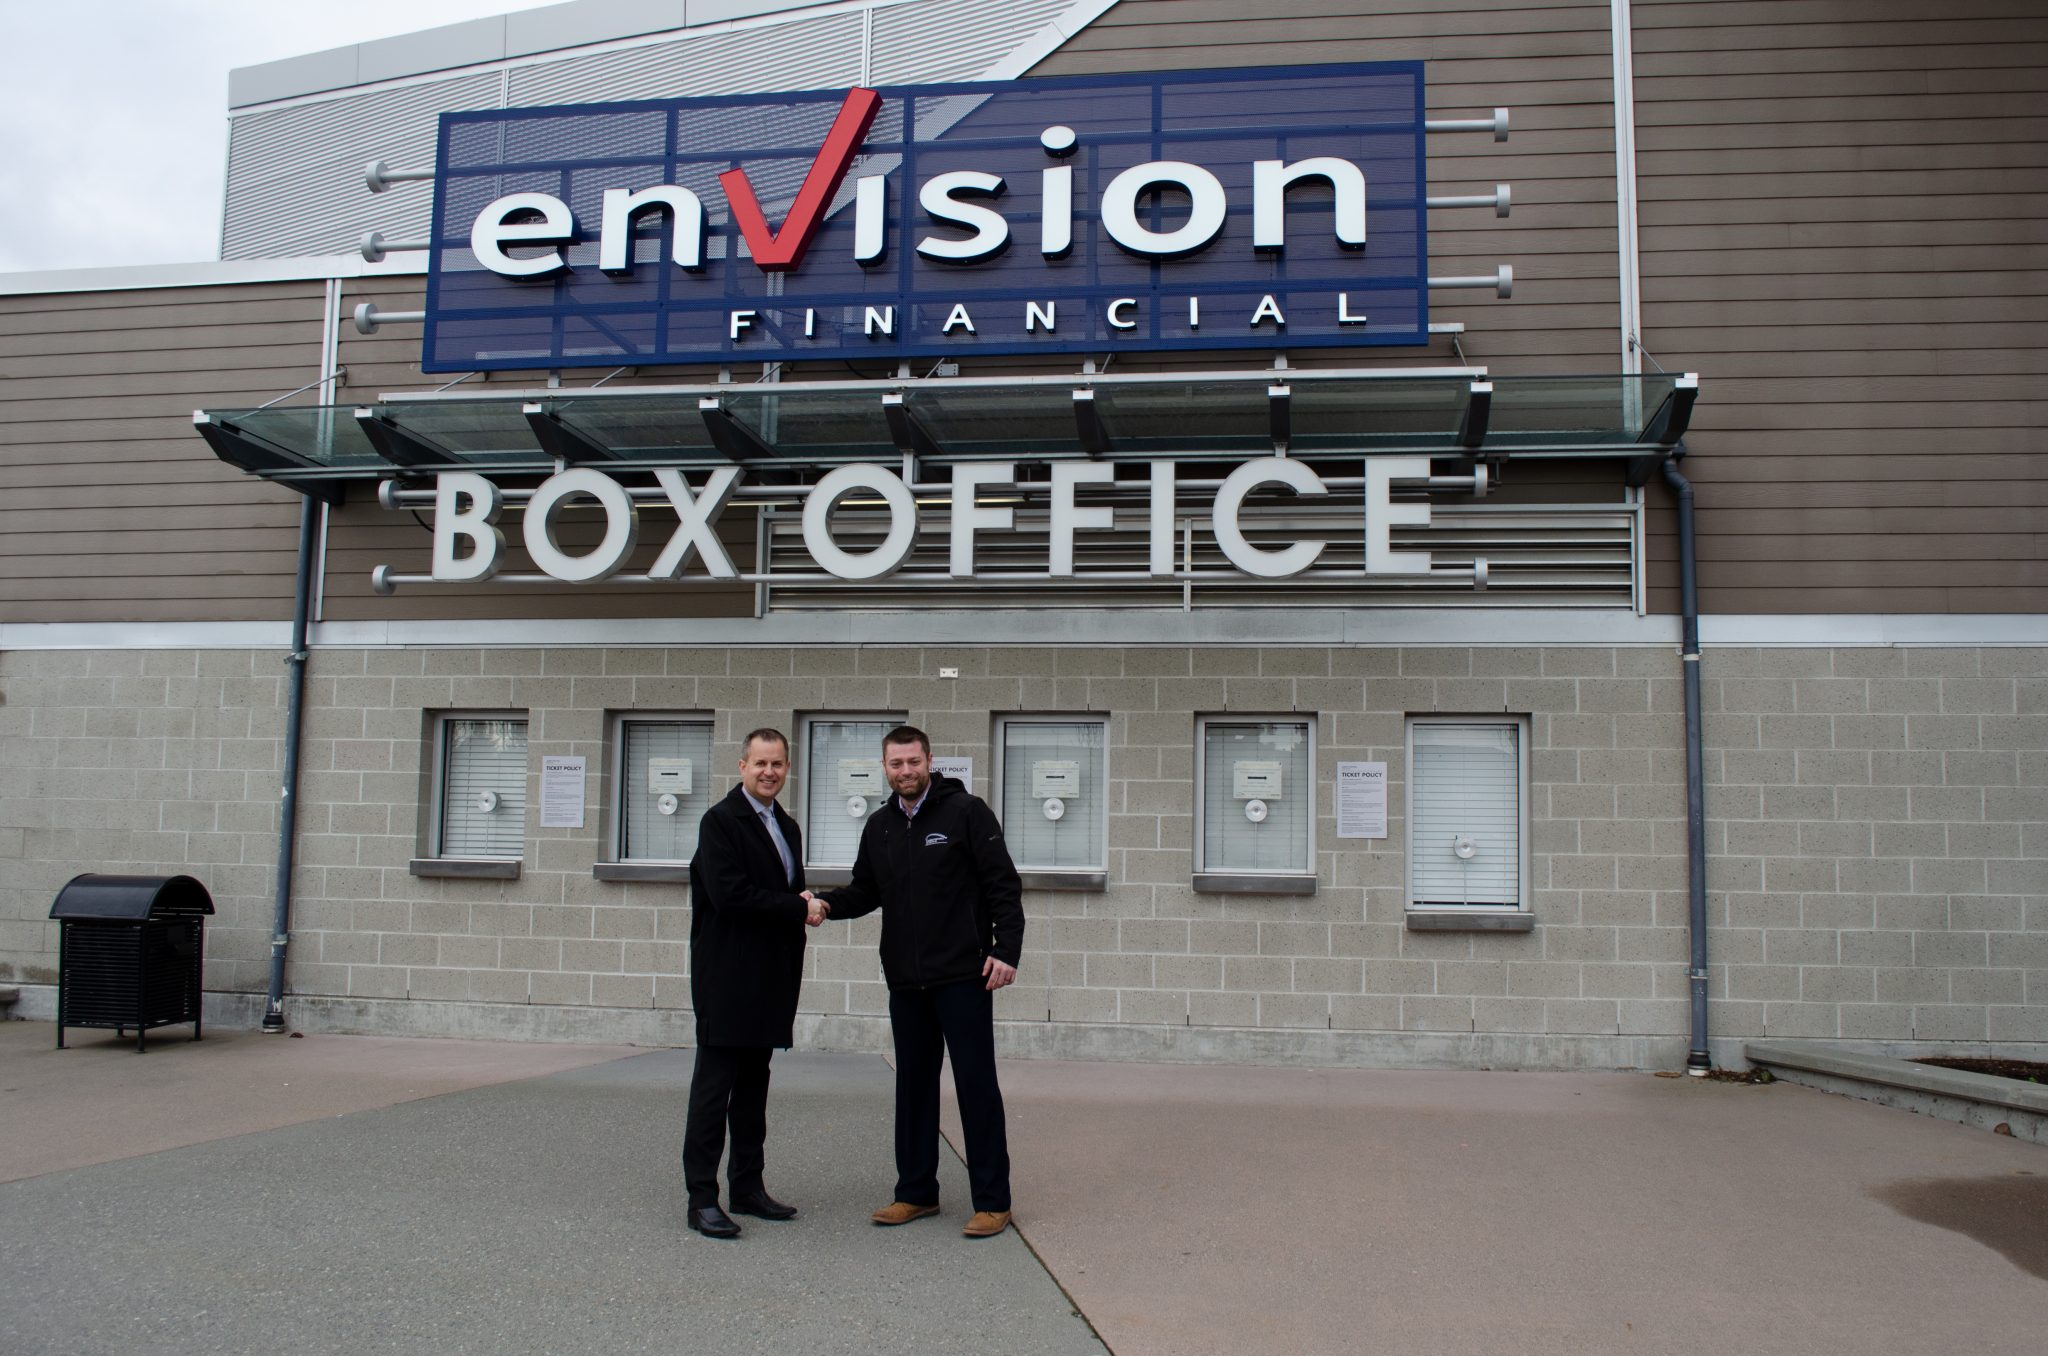 Envision Financial becomes new Box Office Naming Rights Partner at the Abbotsford Centre